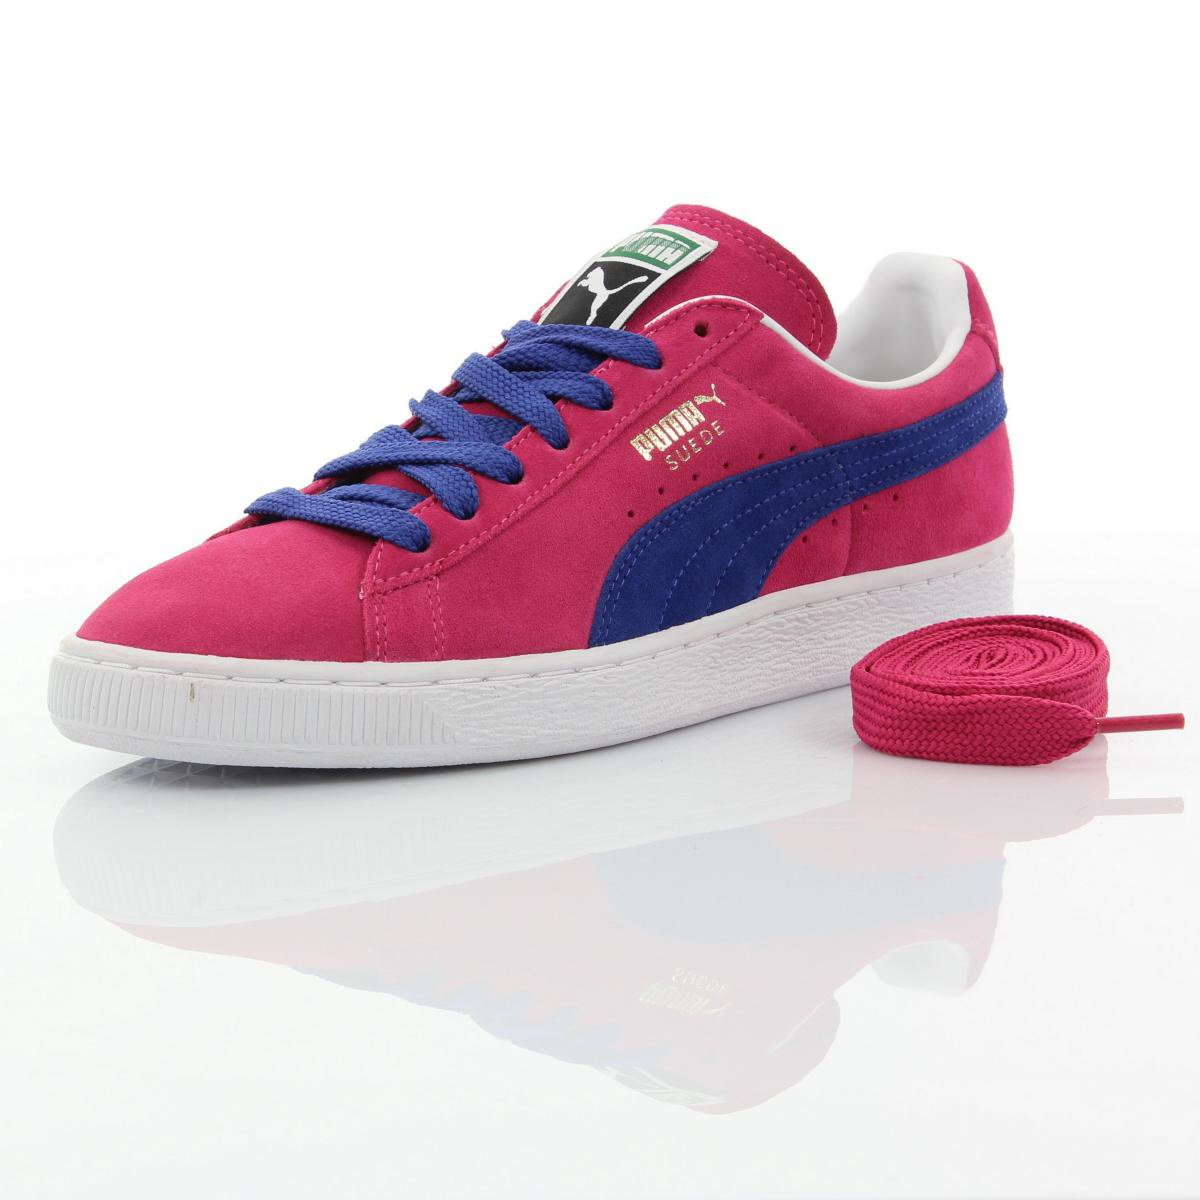 a19bab9da836 Puma Suede Classic Purple Blue White Gold  Amazon.co.uk  Shoes   Bags